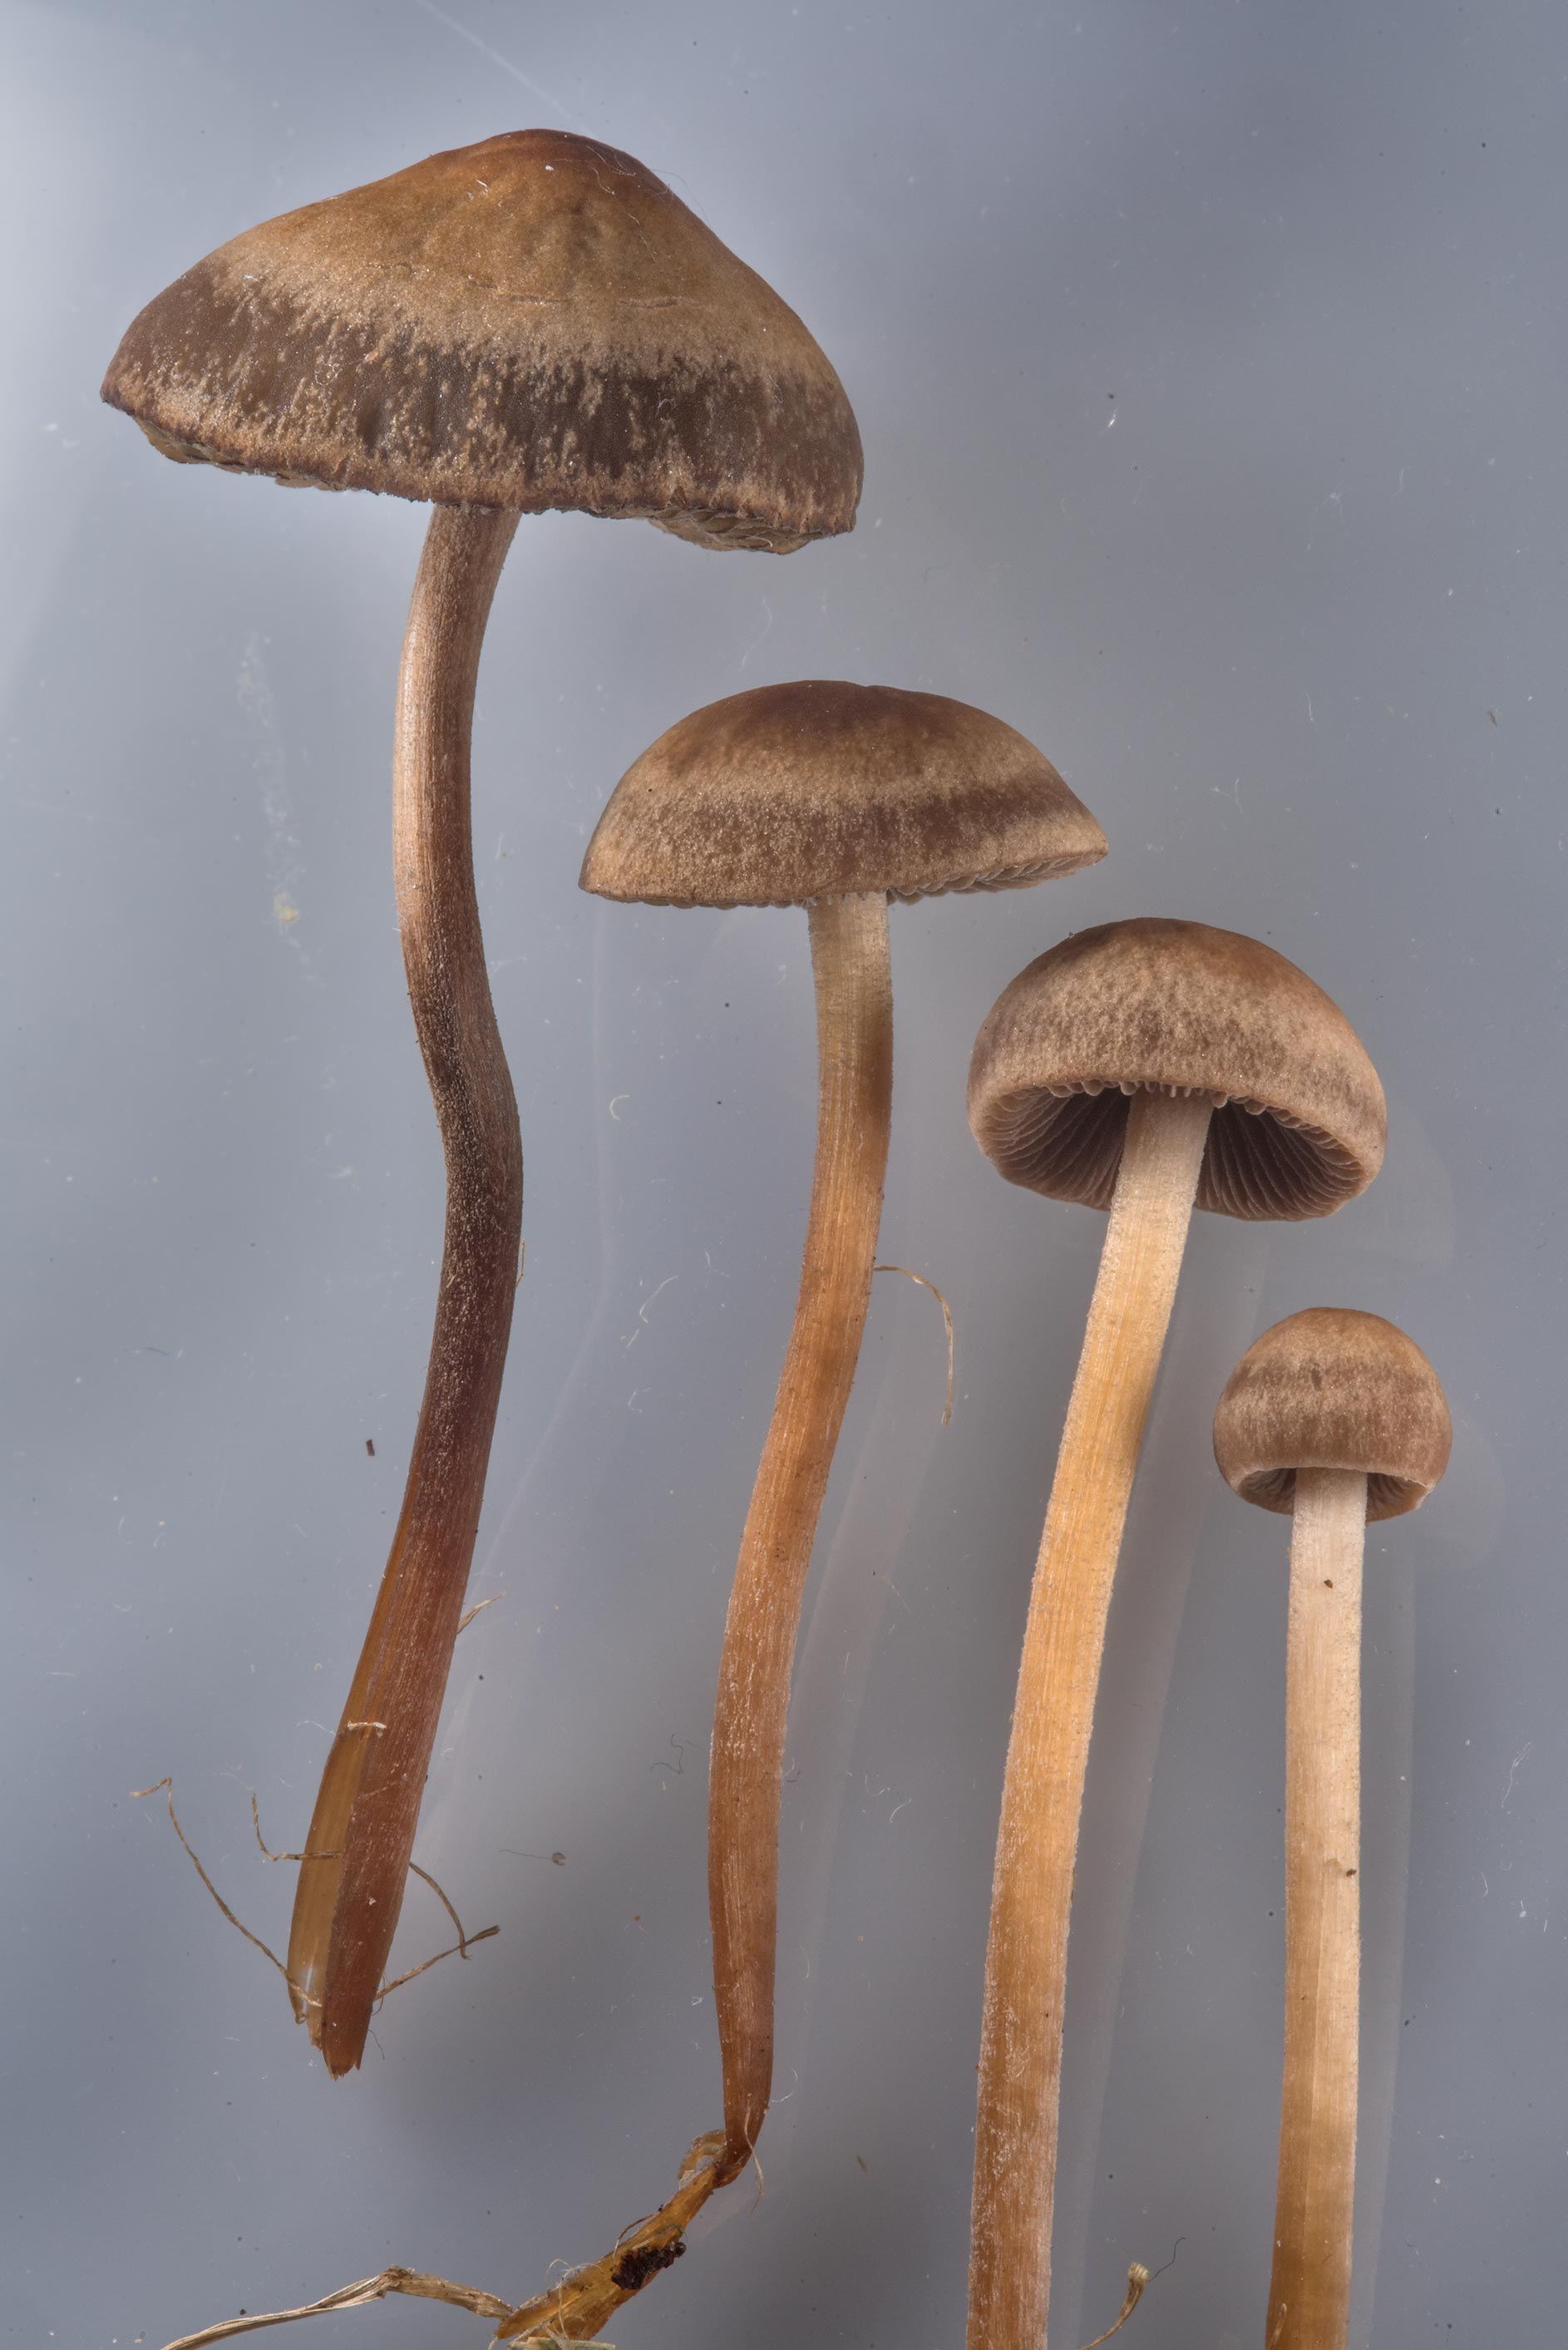 Banded mottlegill mushrooms (Panaeolus cinctulus...M University. College Station, Texas